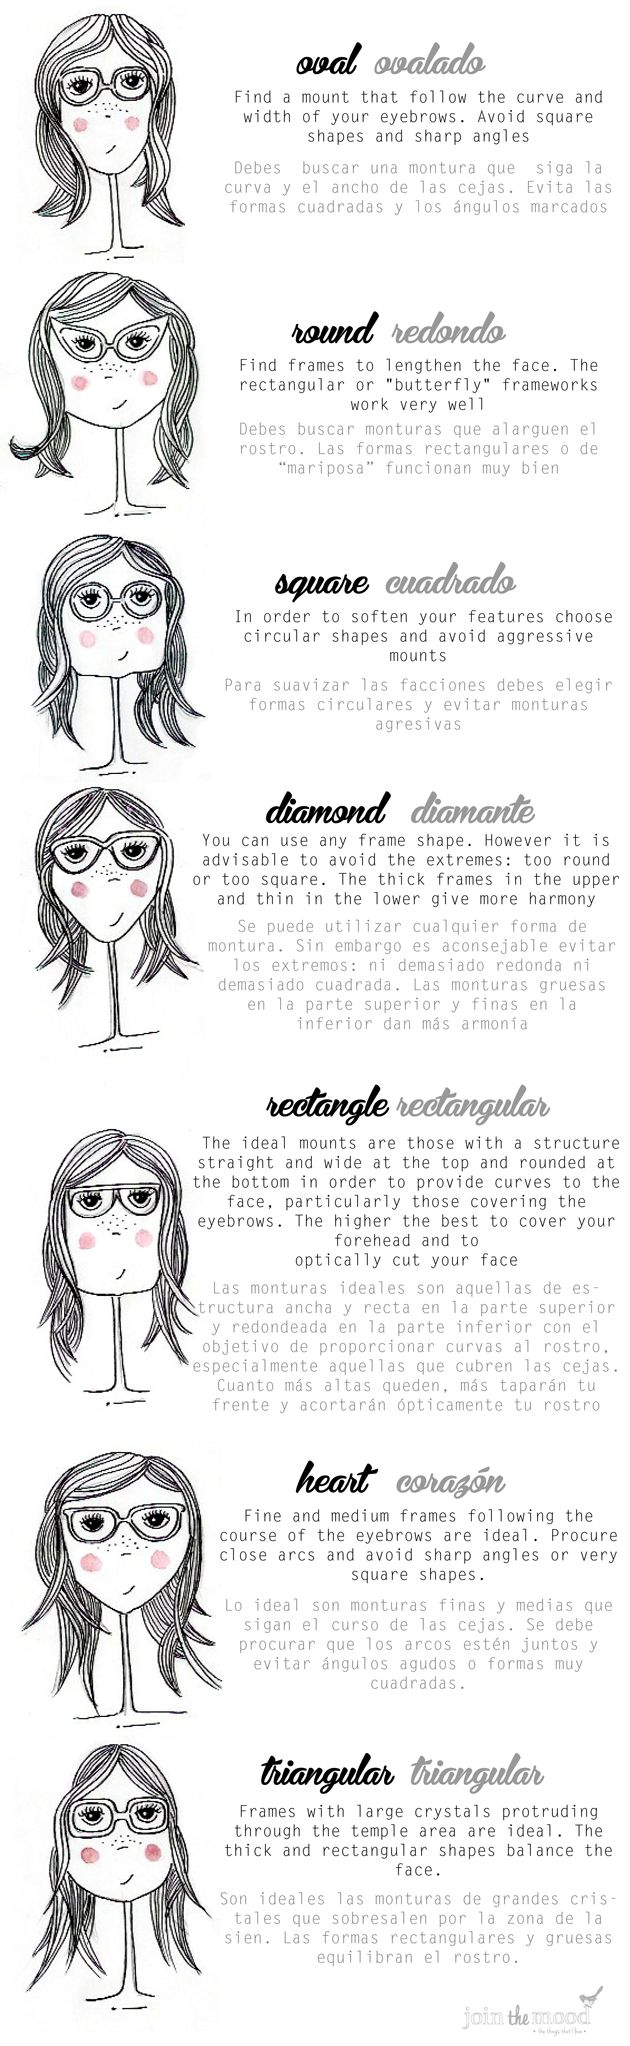 QUE TIPO DE GAFAS USAR SEGÚN LA FORMA DE TU ROSTRO? - http://www.pinterest.com/pin/create/button/?url=http://www.jointhemood.com/2012/12/what-kind-of-glasses-you-must-use.html&media=http://2.bp.blogspot.com/-WK-bBVPPNXw/UL_UtqrQpxI/AAAAAAAAAvA/xZNjg_TwdYs/s0/que-gafas-usar-segun-tu-rostro.png&description=WHAT%20KIND%20OF%20GLASSES%20YOU%20MUST%20USE%20ACCORDING%20TO%20YOUR%20FACE%20SHAPE?%20/%20QUE%20TIPO%20DE%20GAFAS%20USAR%20SEG%C3%9AN%20LA%20FORMA%20DE%20TU%20ROSTRO?